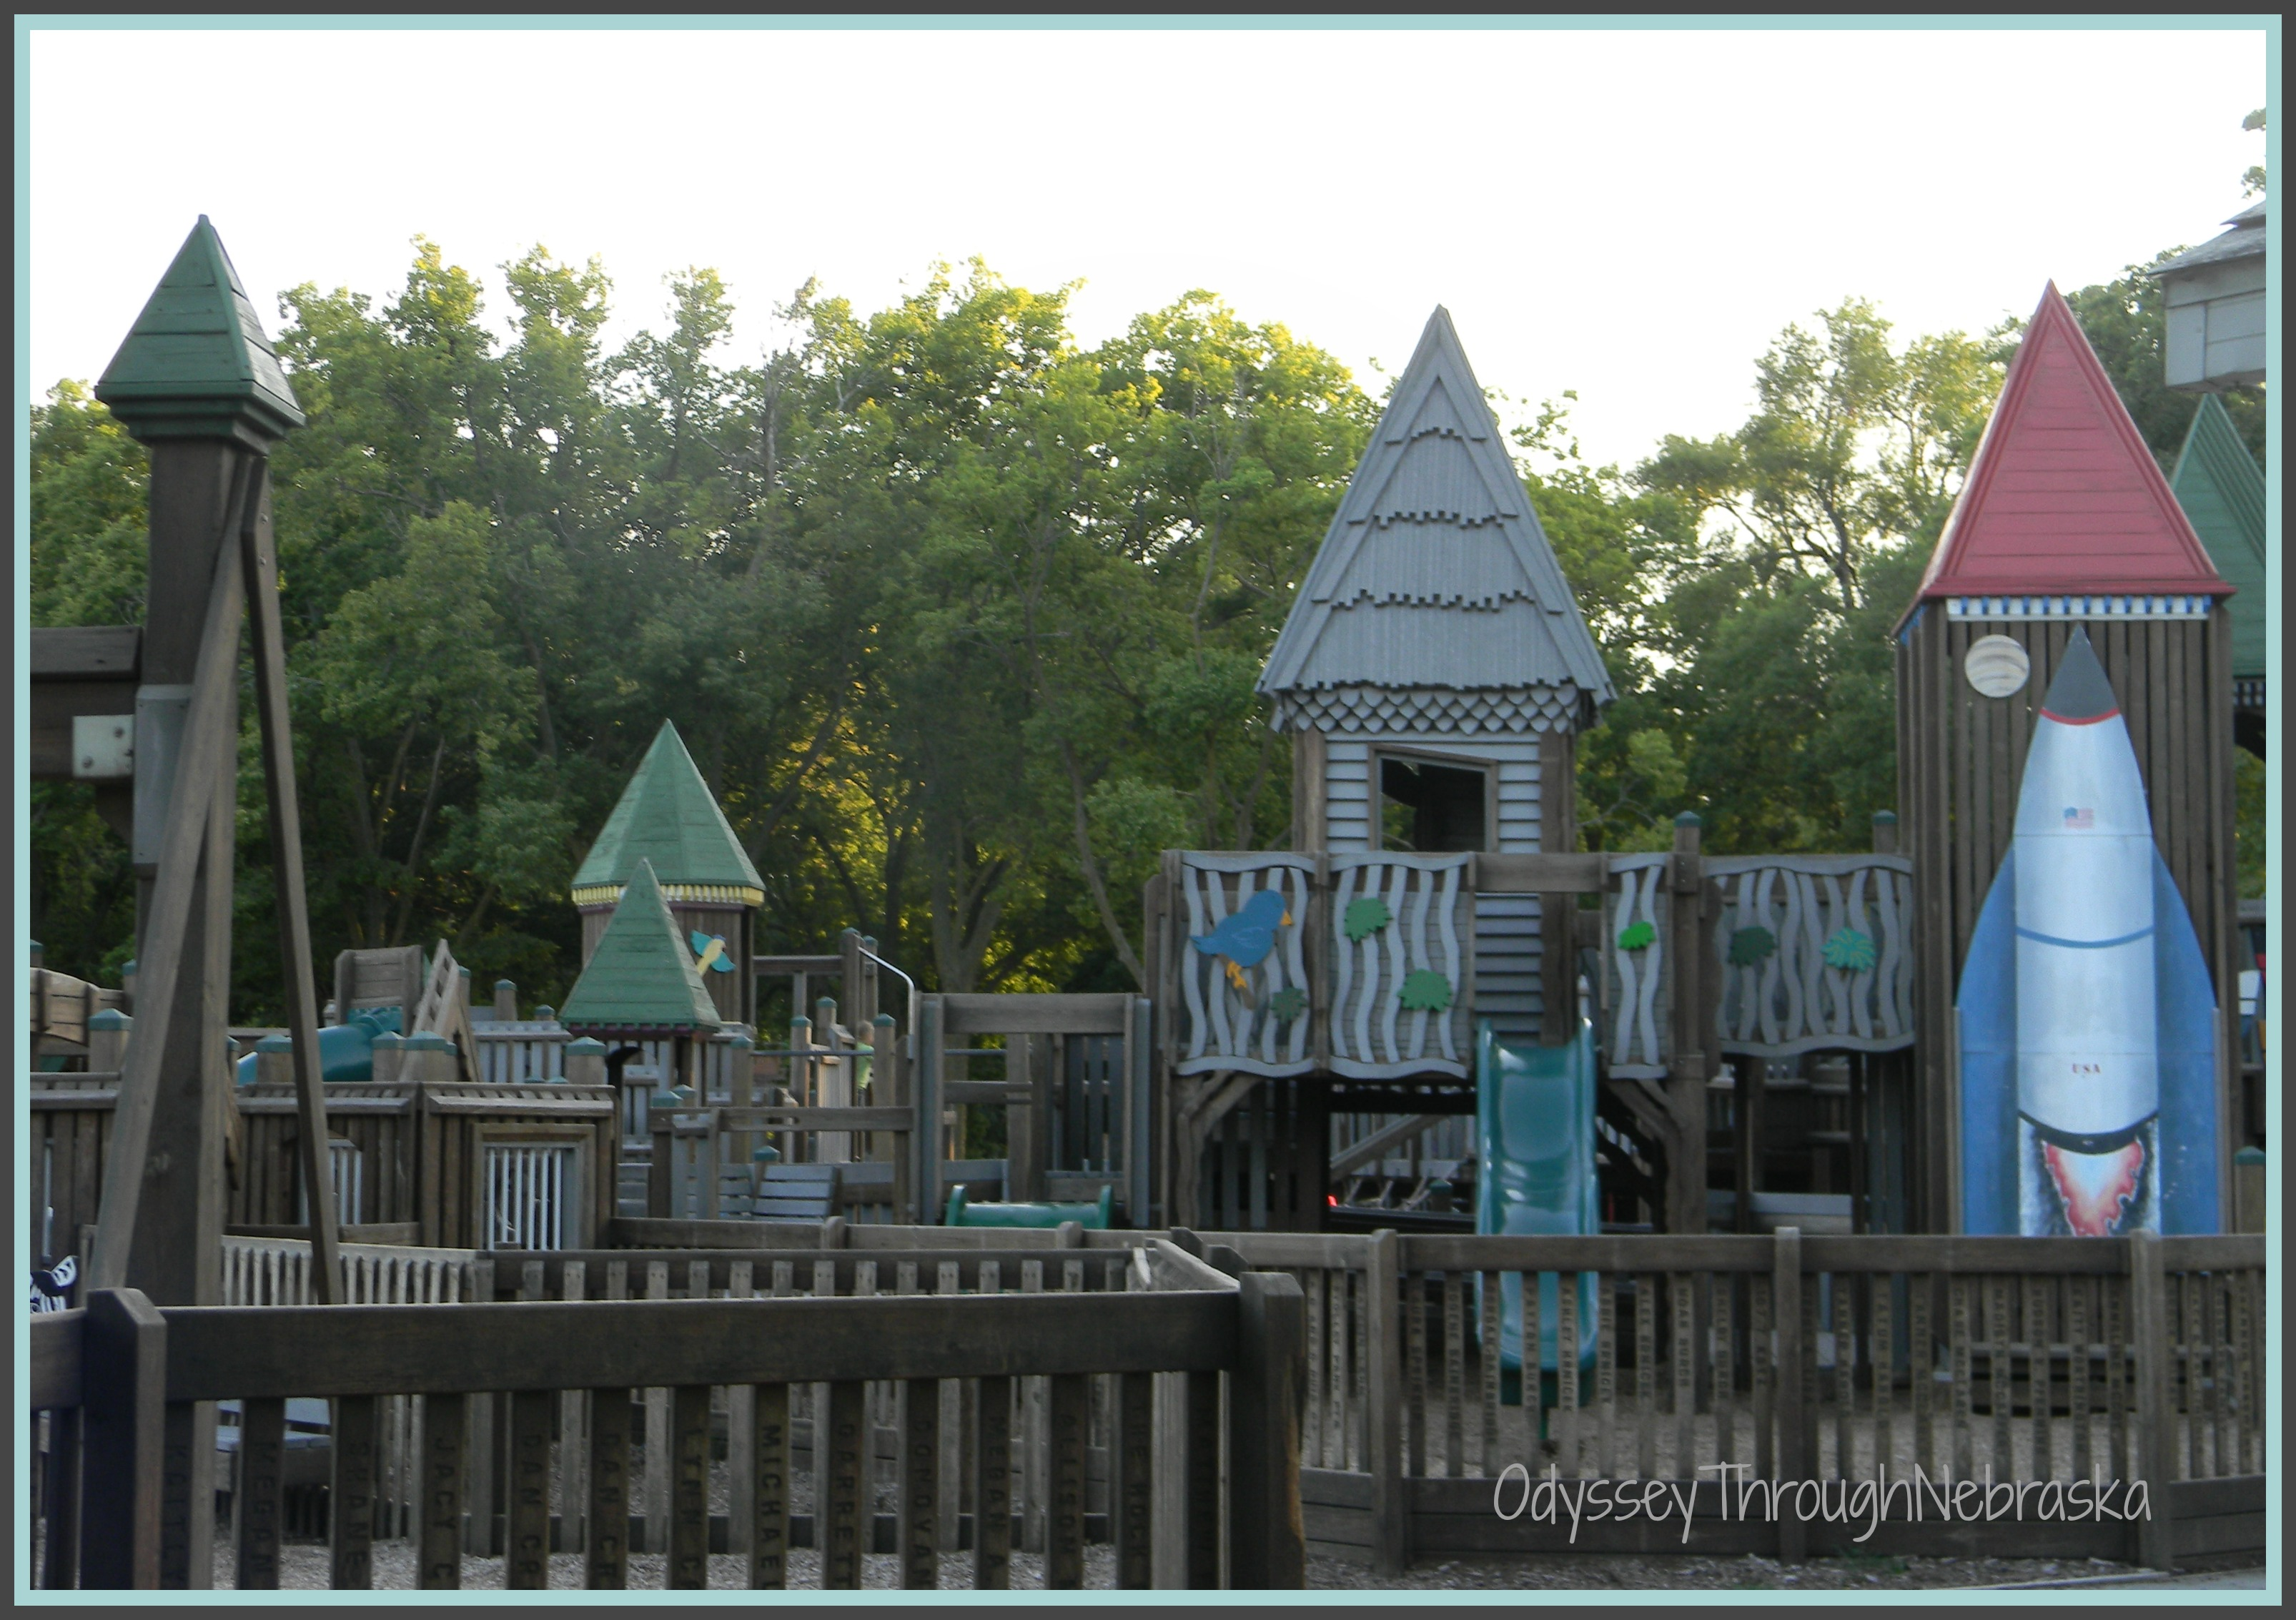 Stolley Park a fun park in Grand Island Nebraska